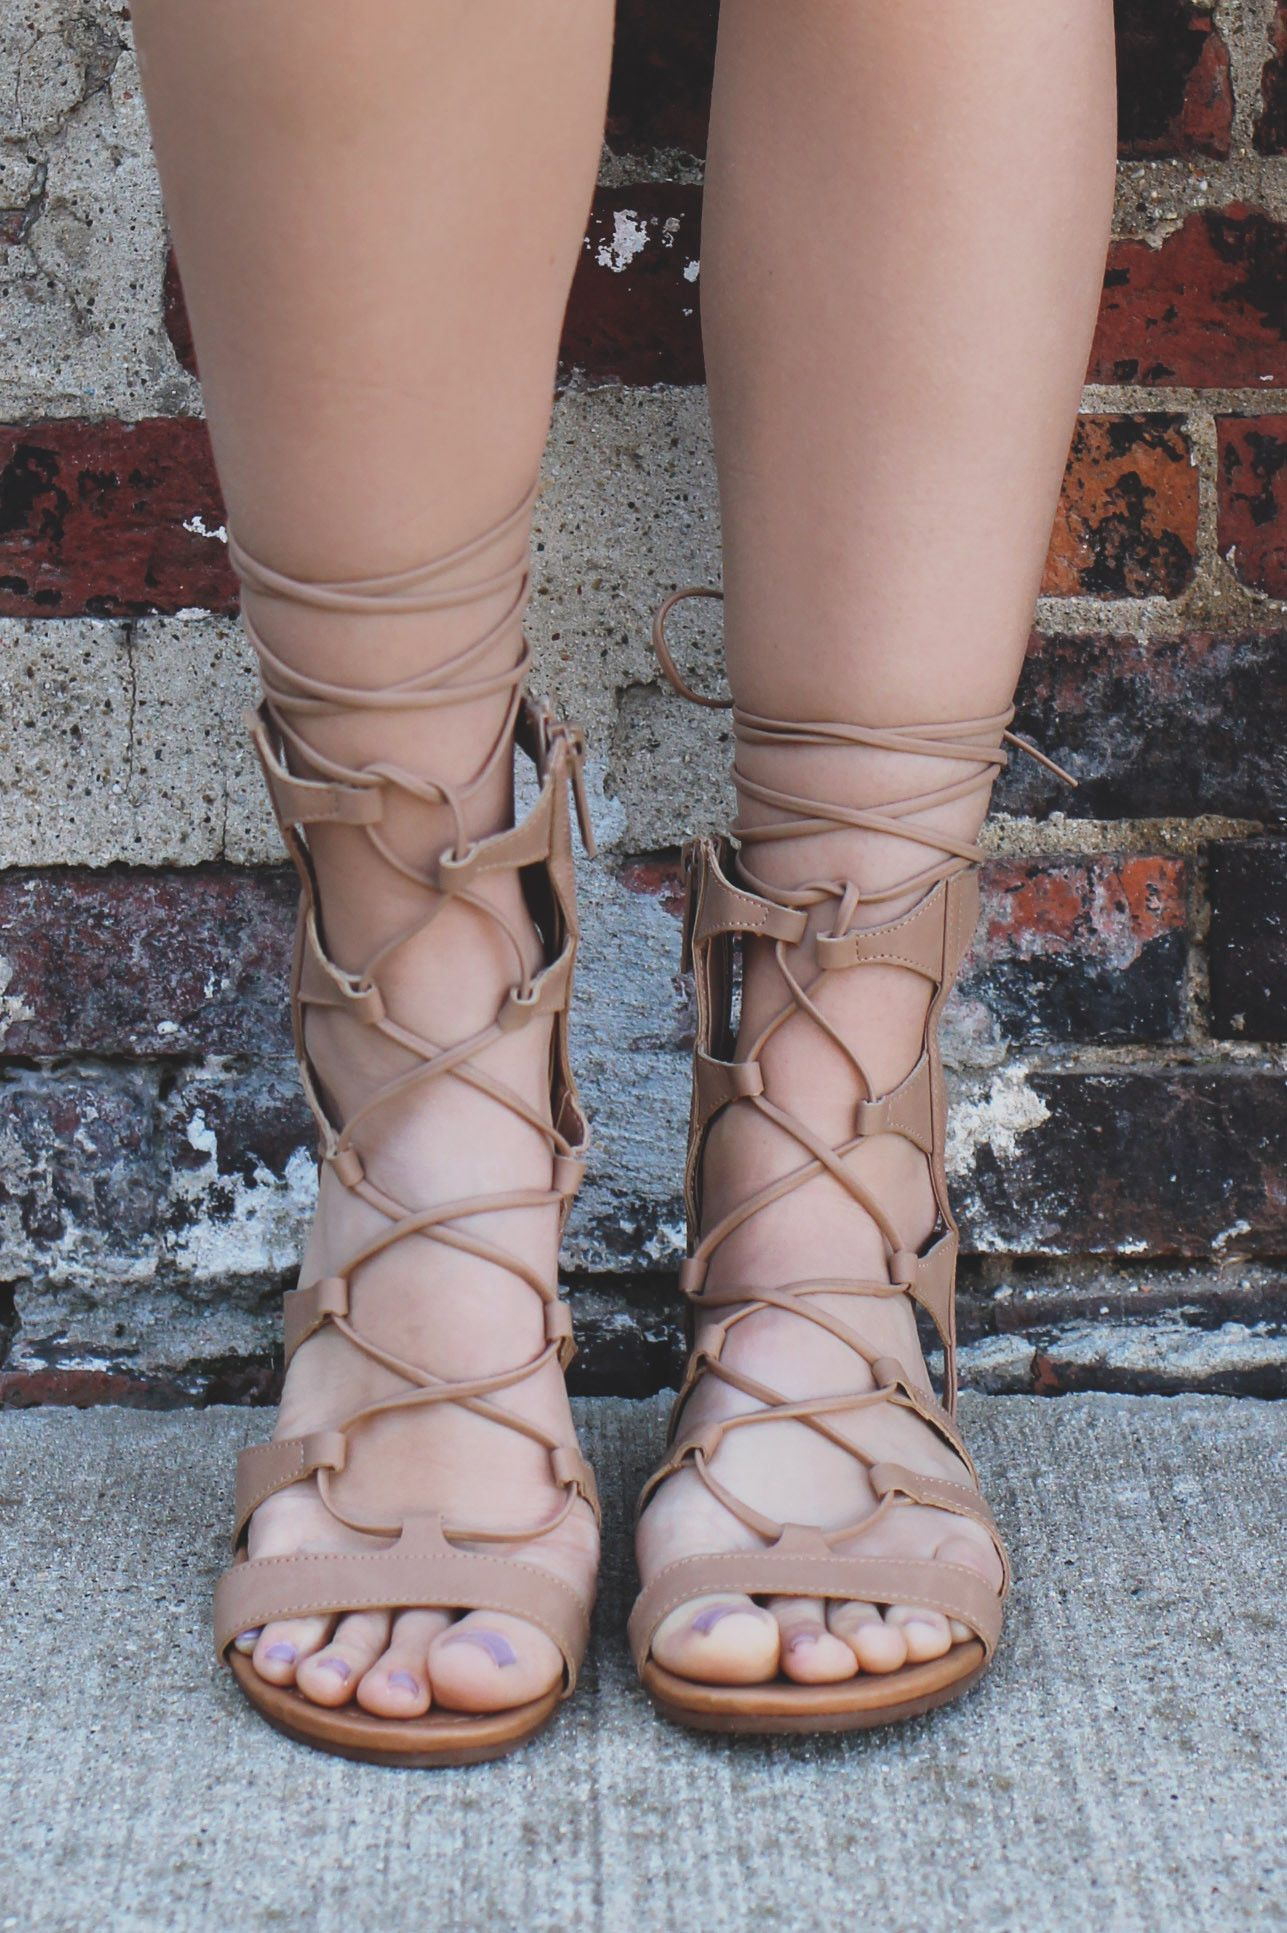 Get Festival Ready With Our Lace Up Goddess Sandals This